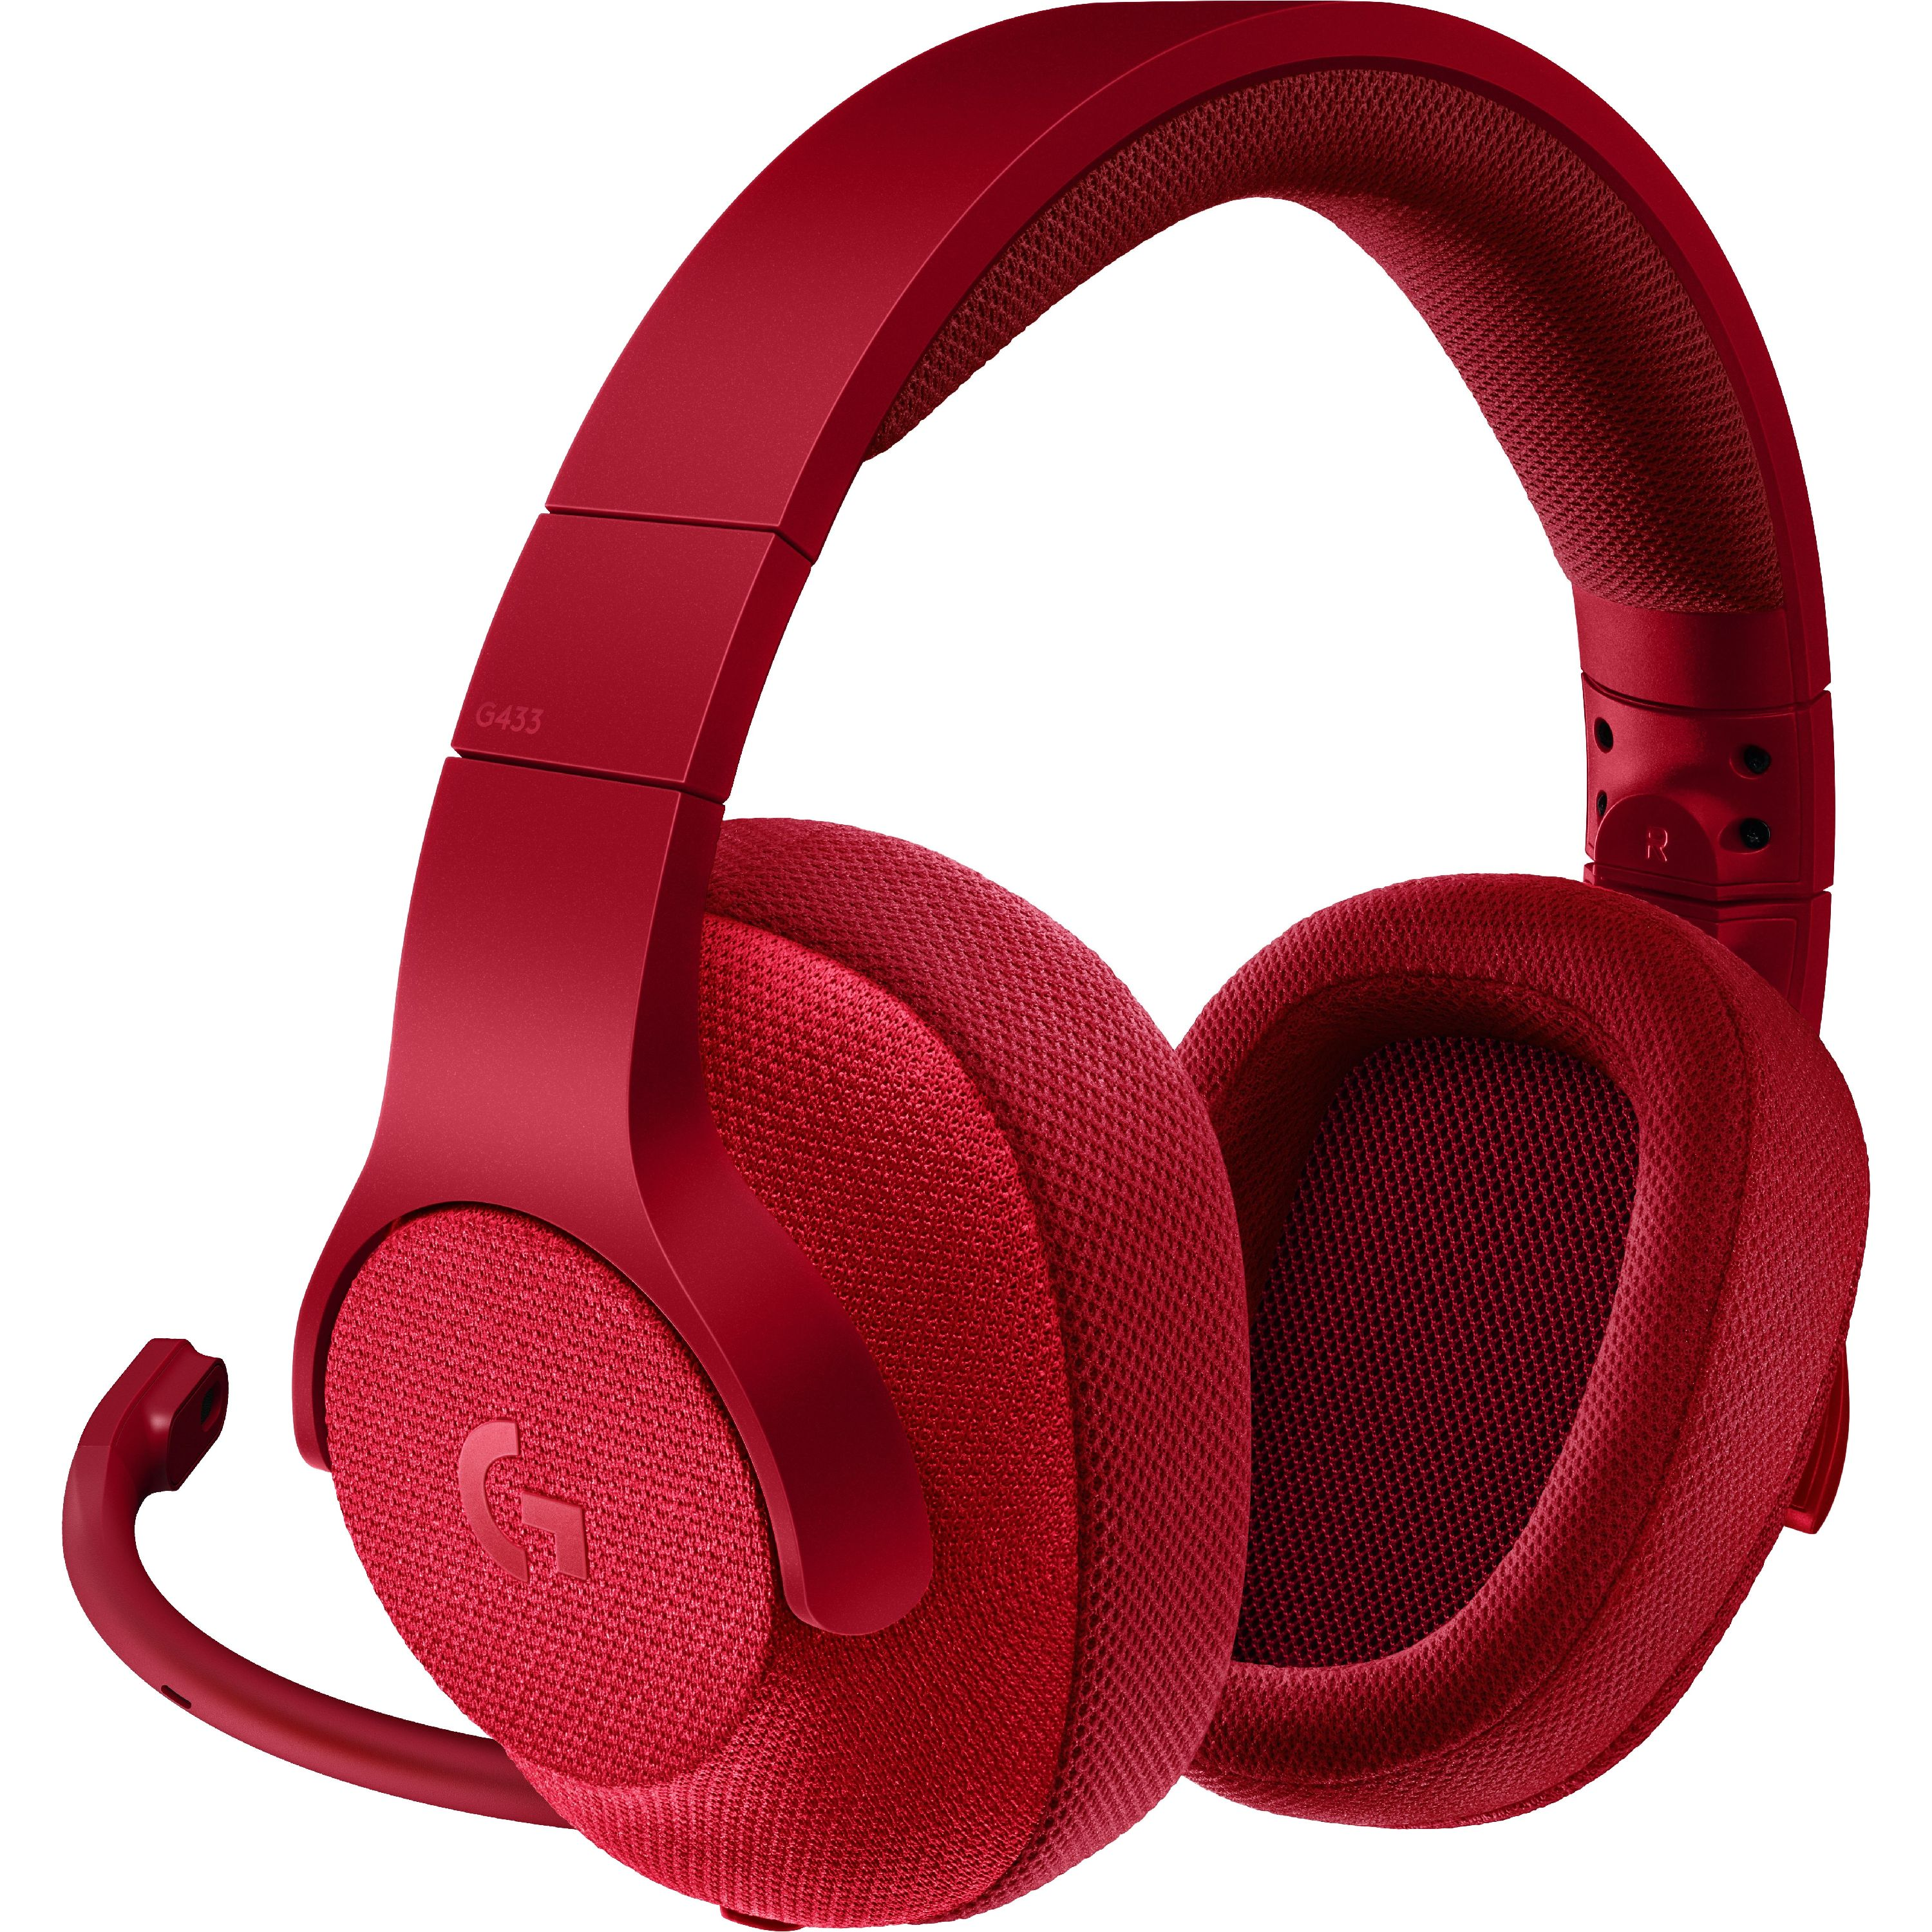 Logitech G433 7.1 WIRED SURROUND GAMING HEADSET Red by Logitech